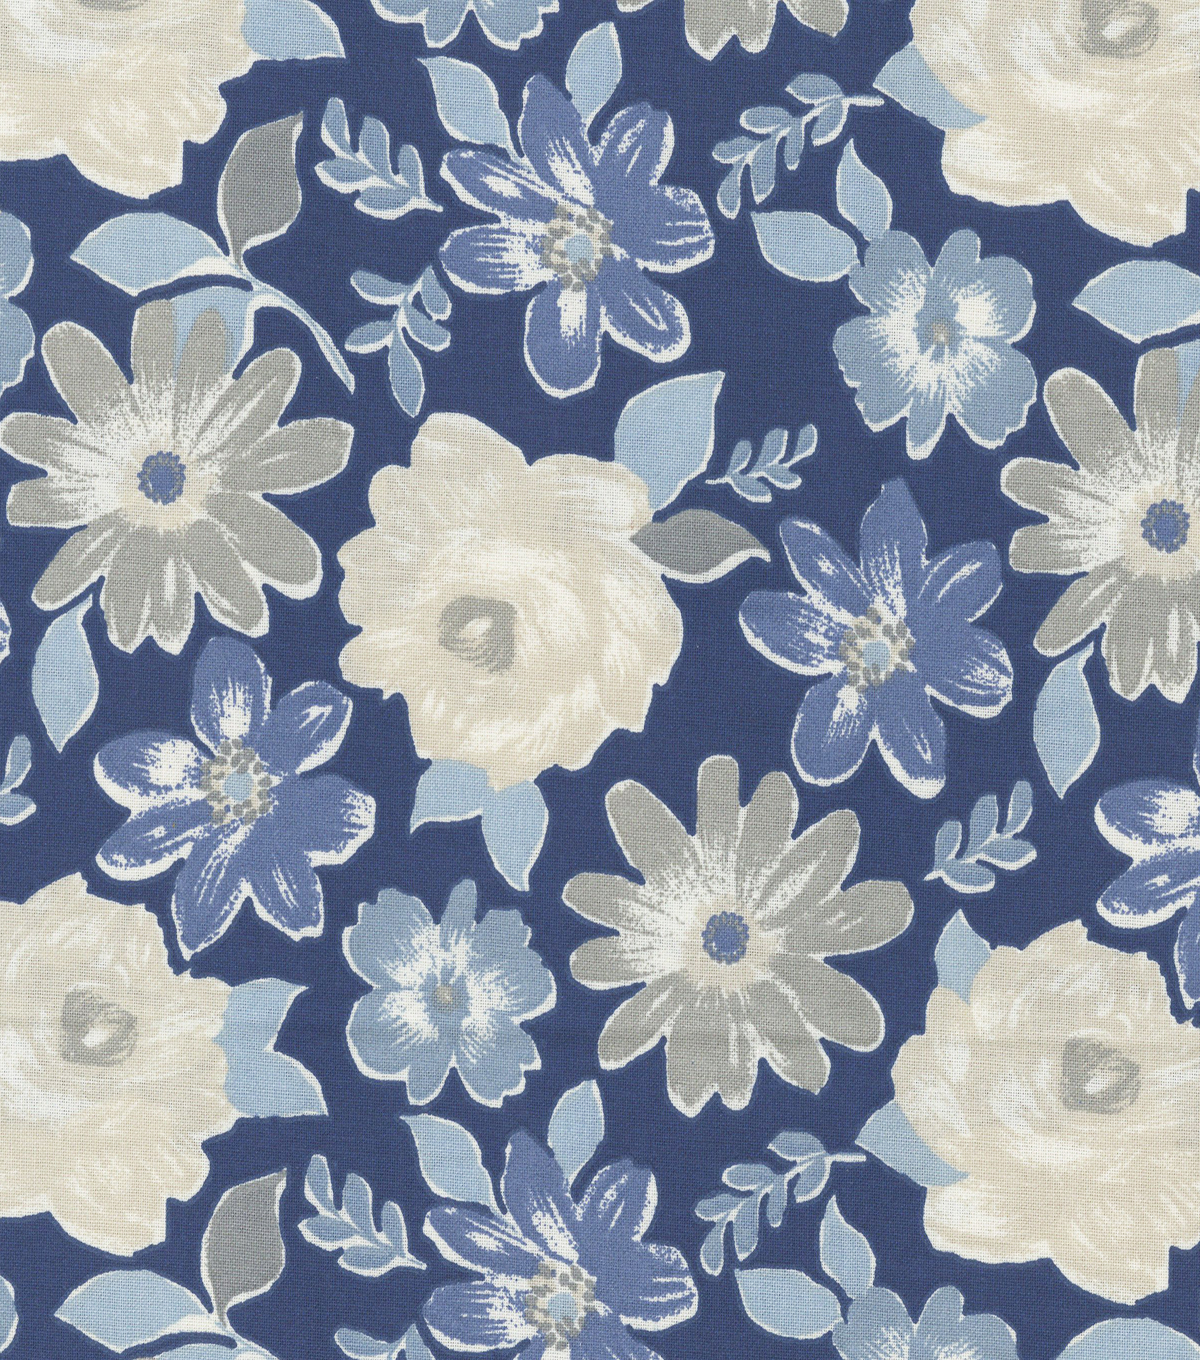 Keepsake Calico Cotton Fabric -Matilda Indigo